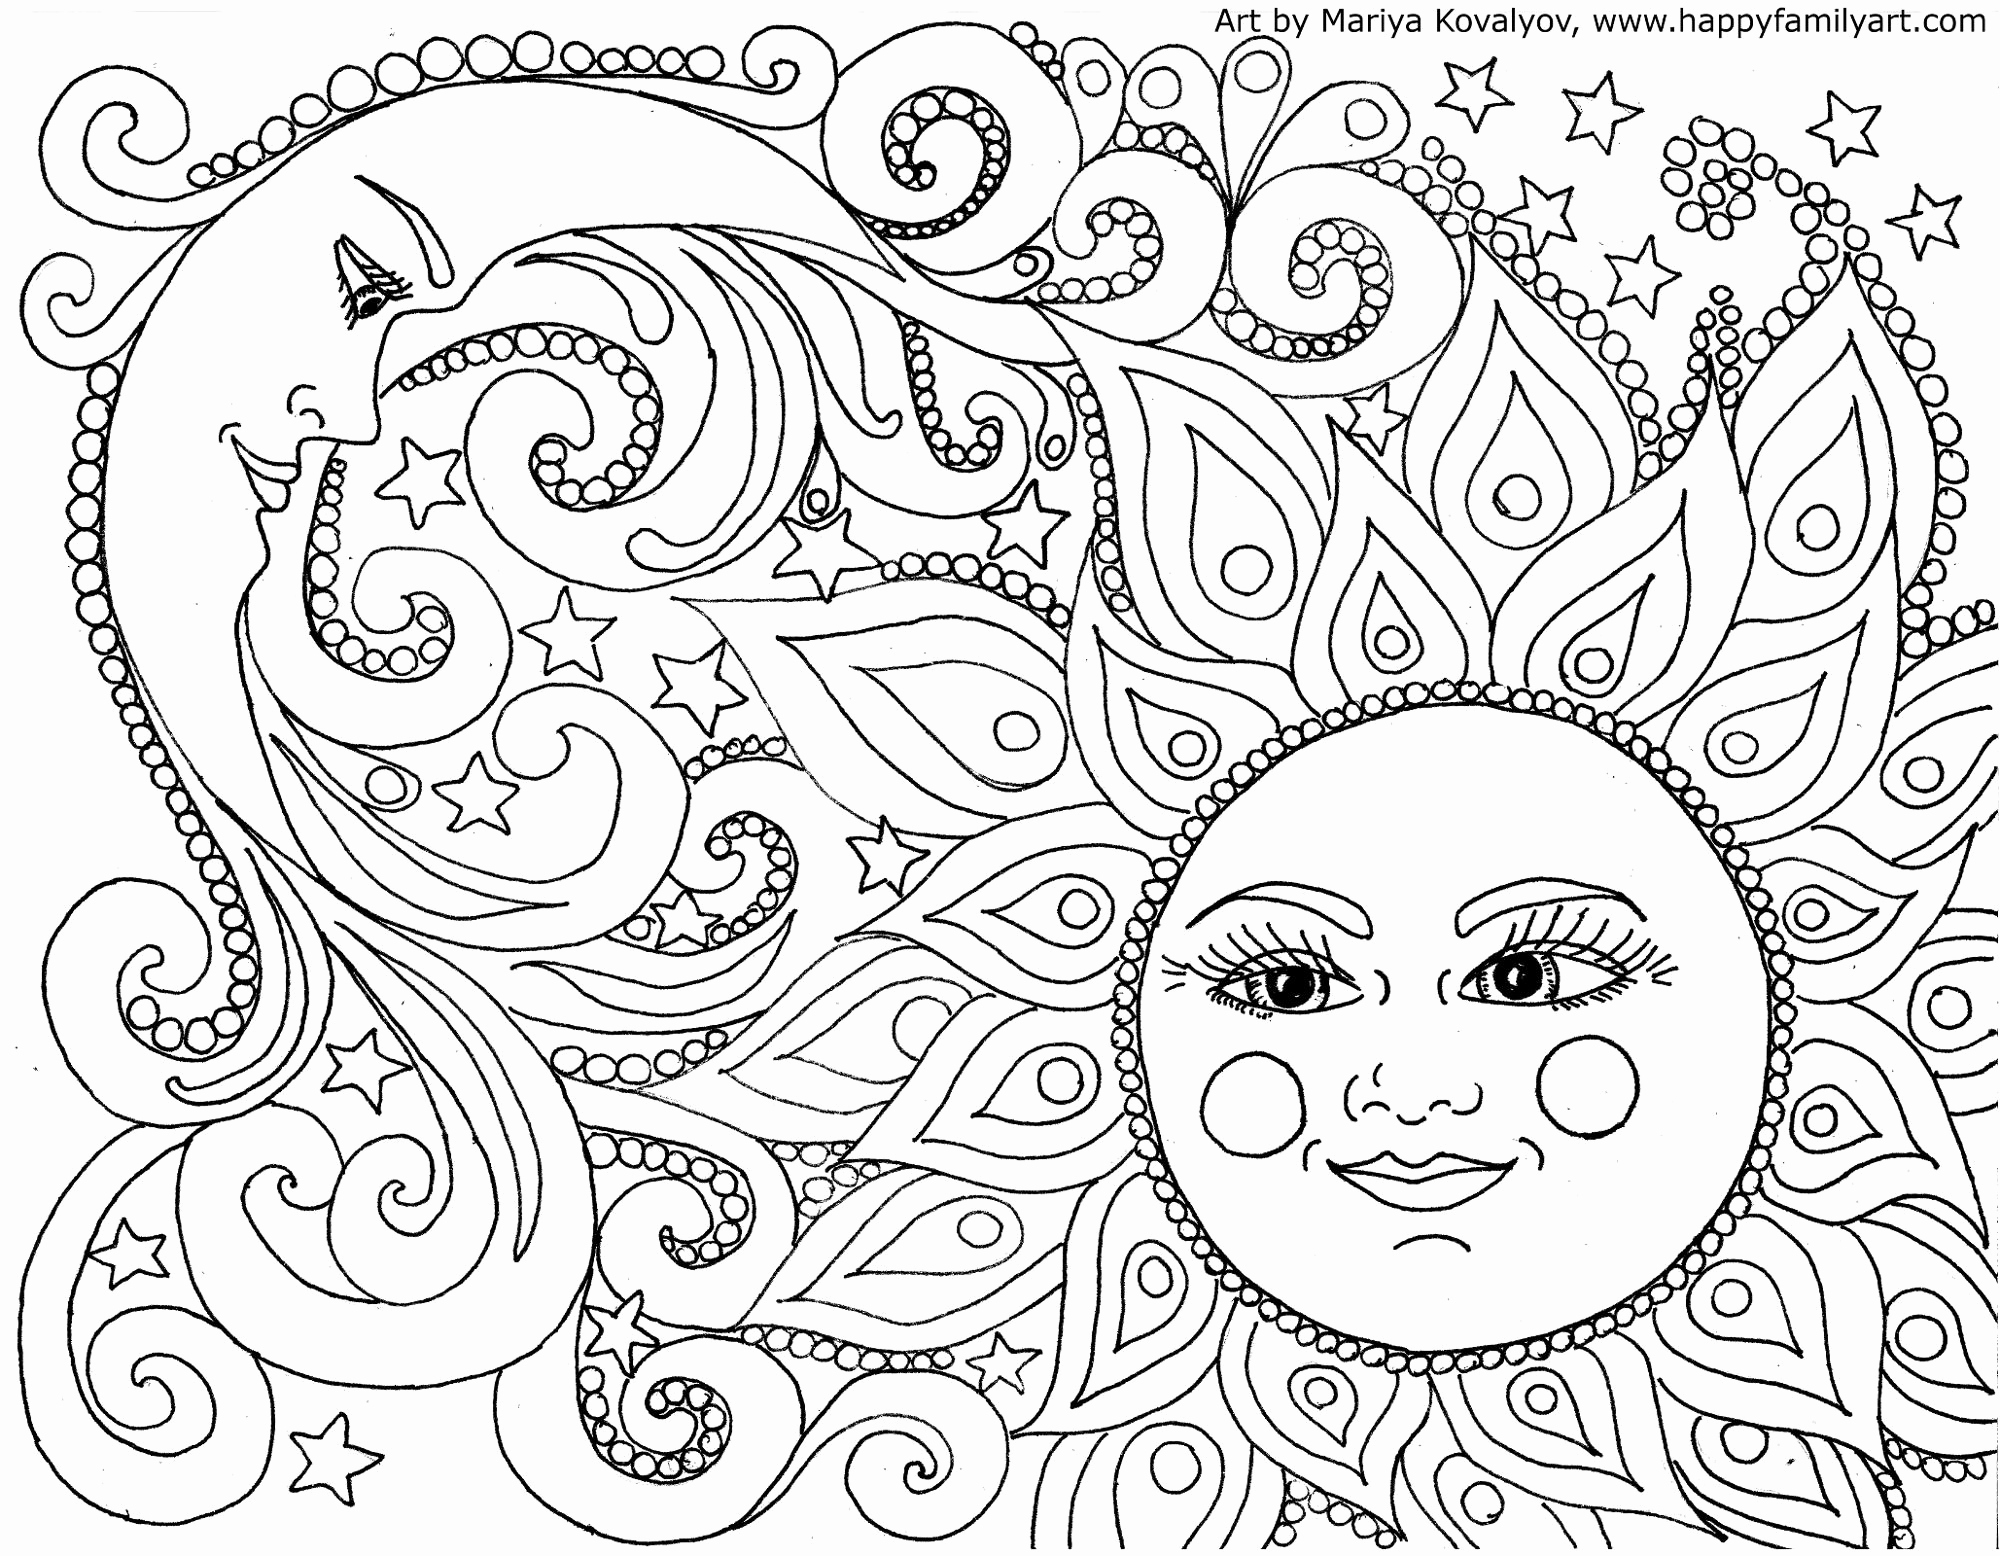 2000x1556 Free Printable Pictures To Colour Awesome Original And Fun